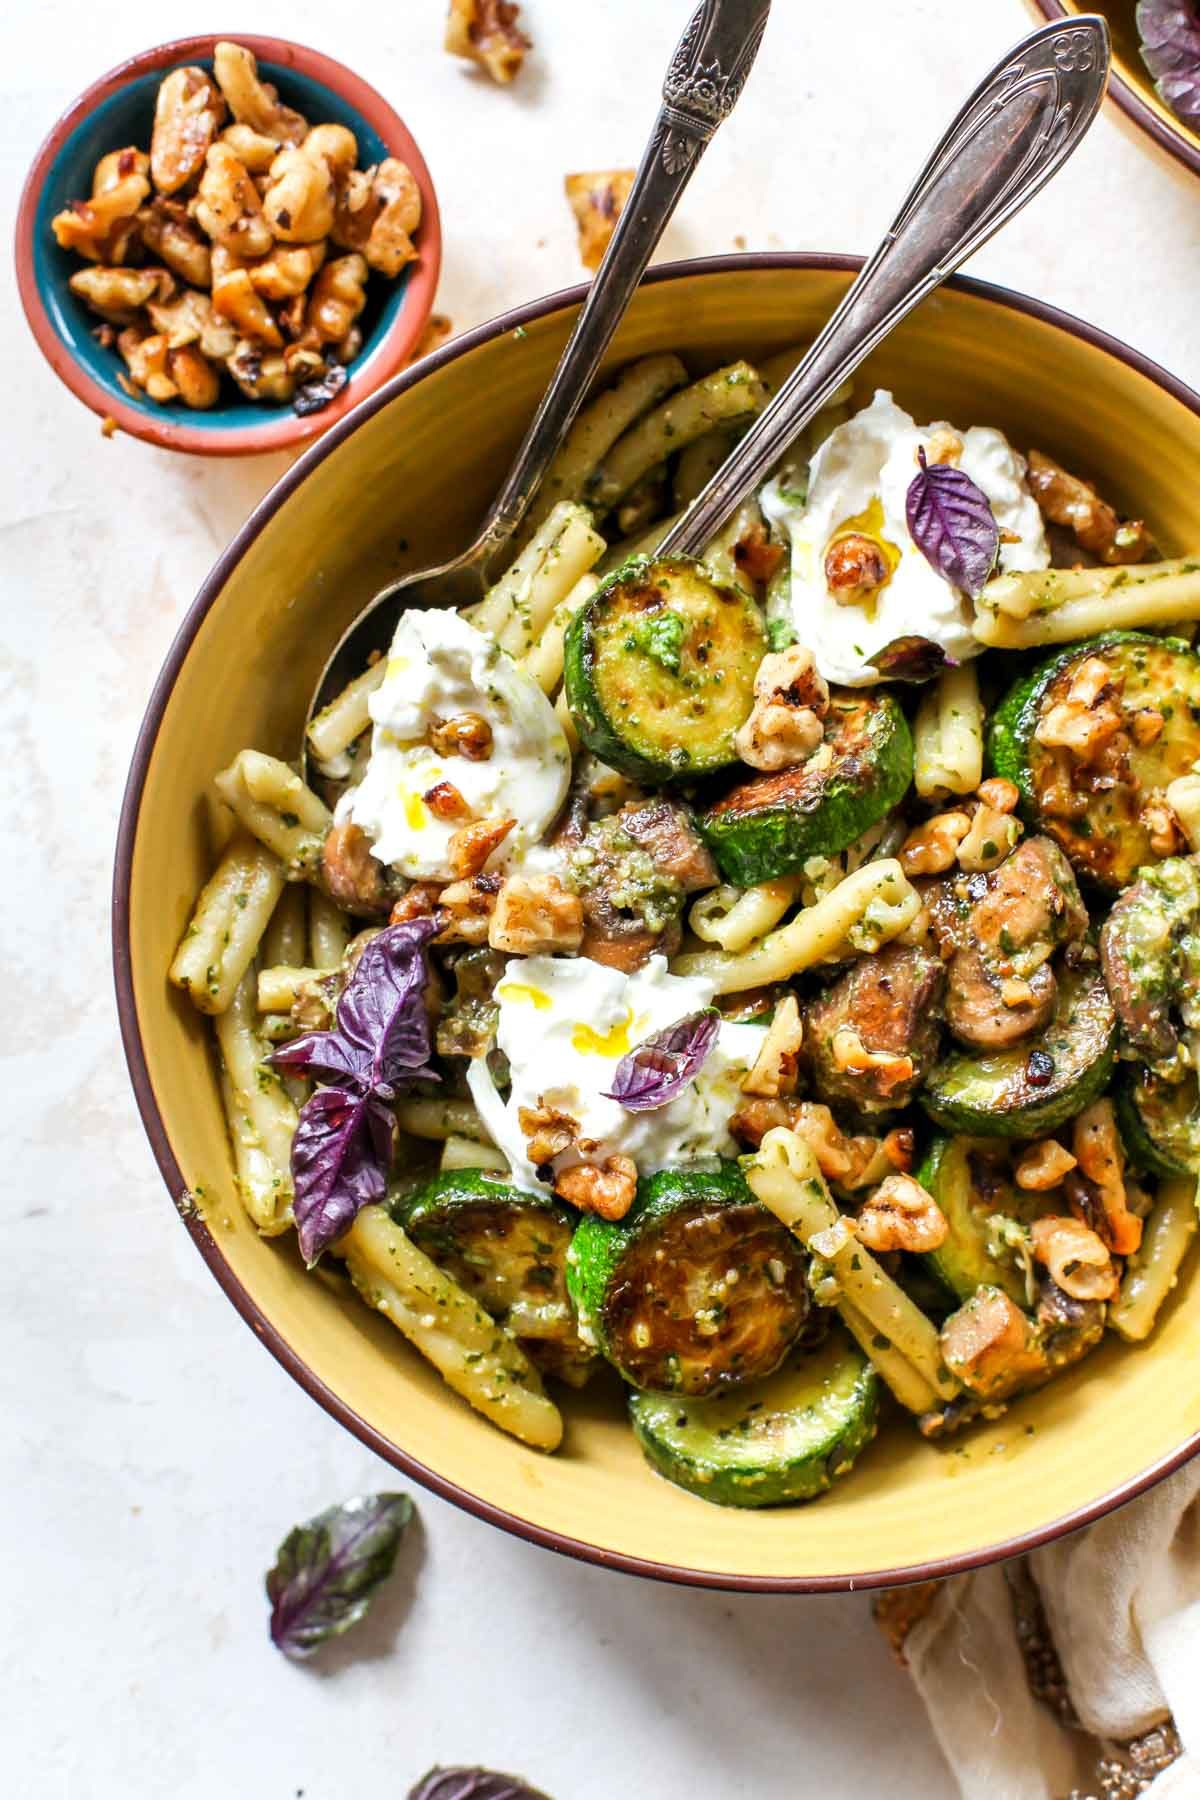 zucchini pesto pasta with buttery mushrooms and walnuts